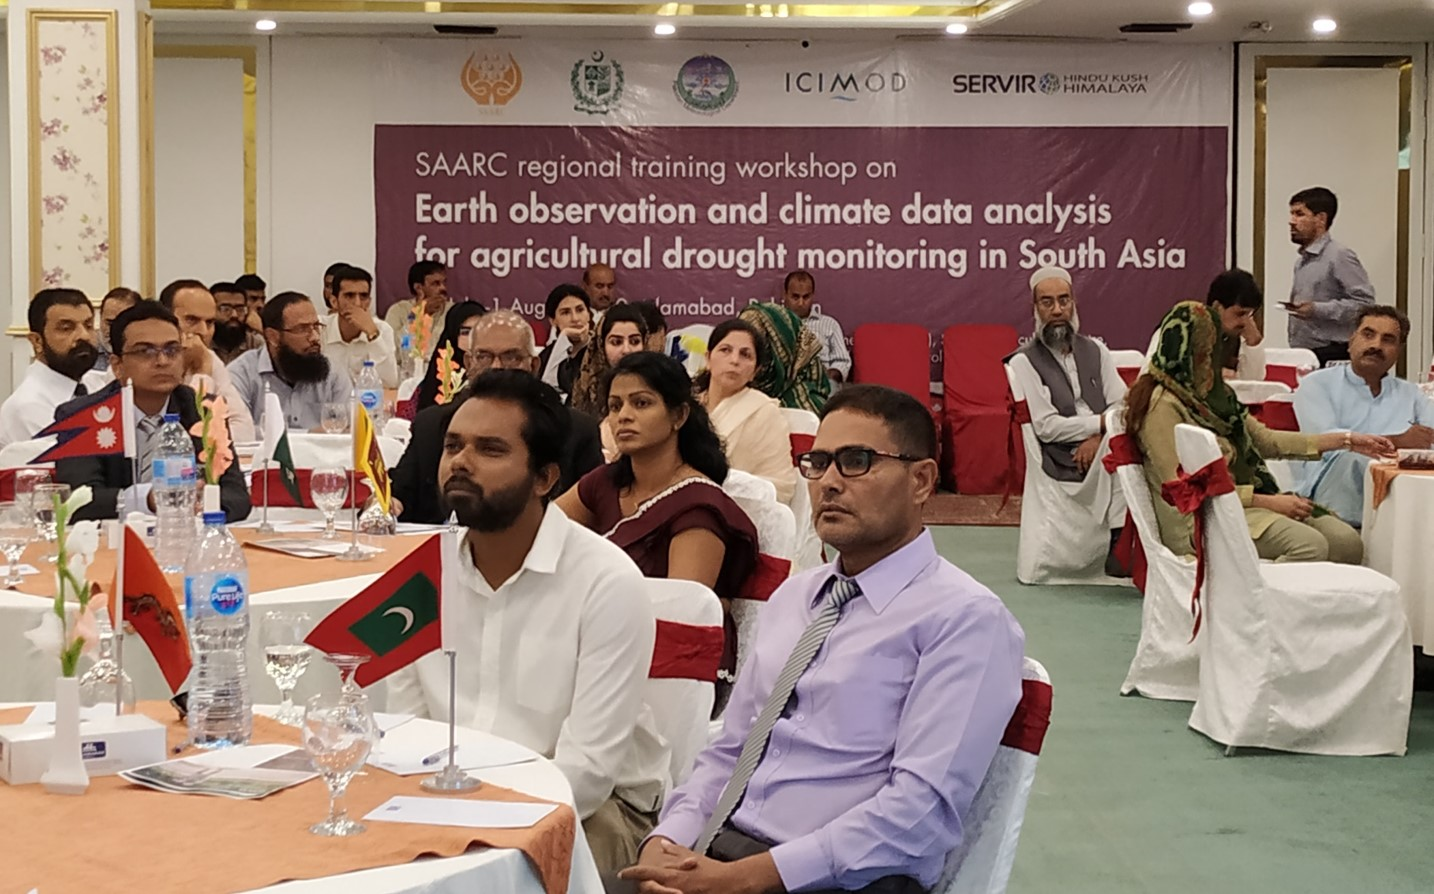 Participants at the regional workshop on earth observation and climate data analysis for agriculture drought monitoring in South Asia. (Photo: ICIMOD)